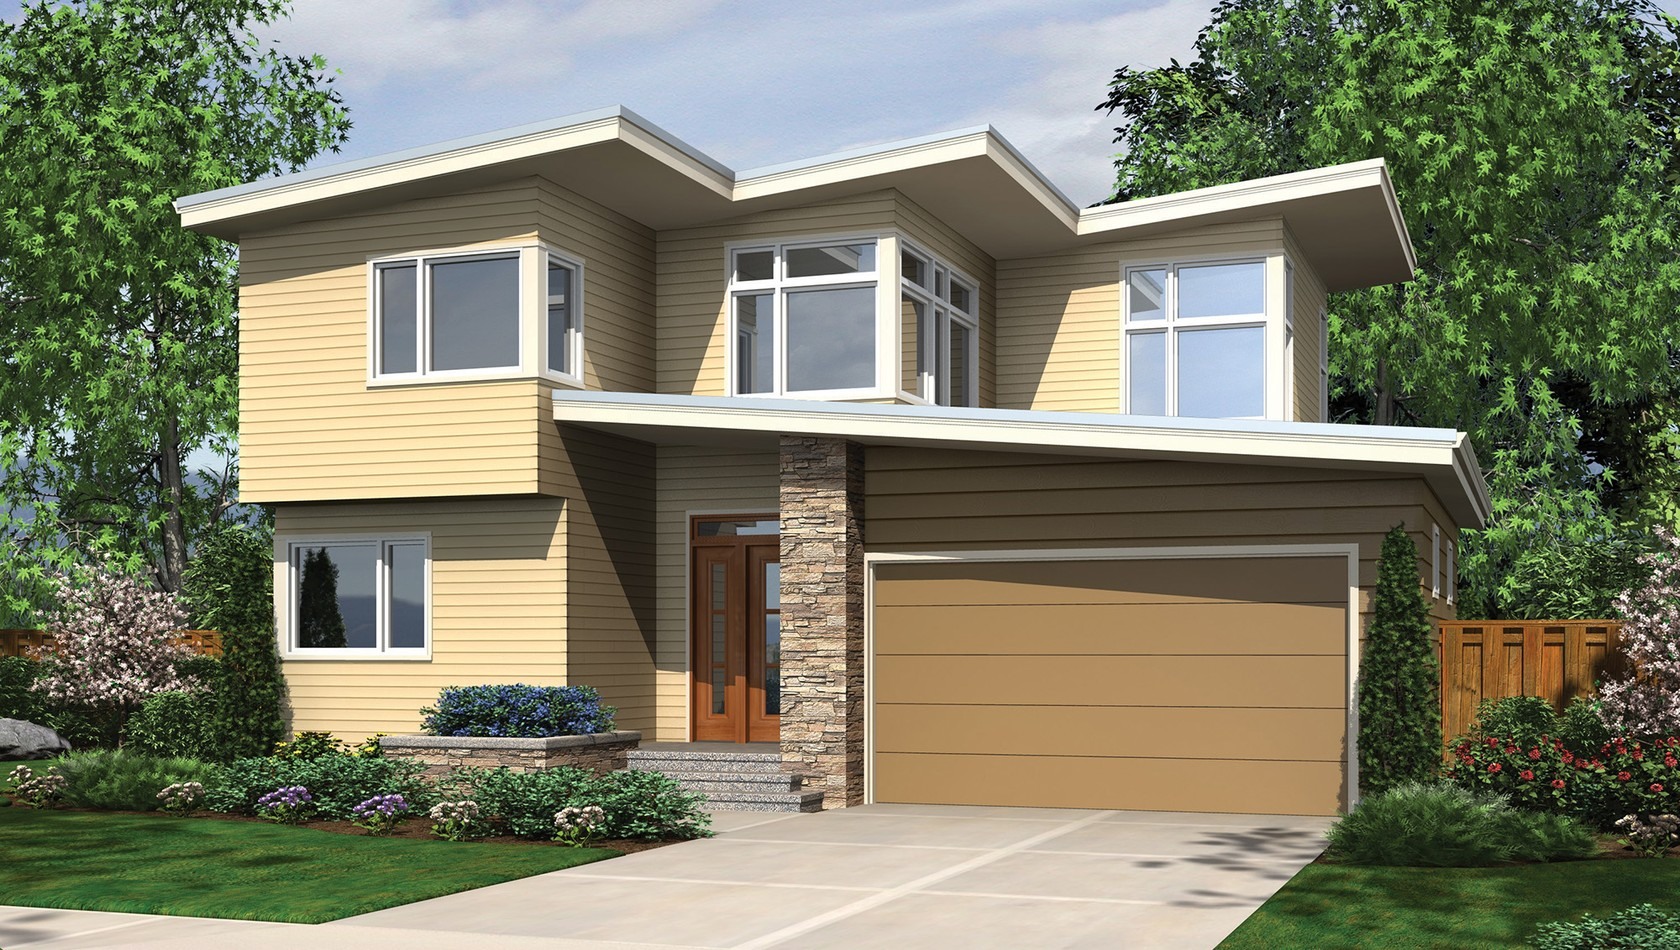 Main image for house plan 22178: The Lorimer